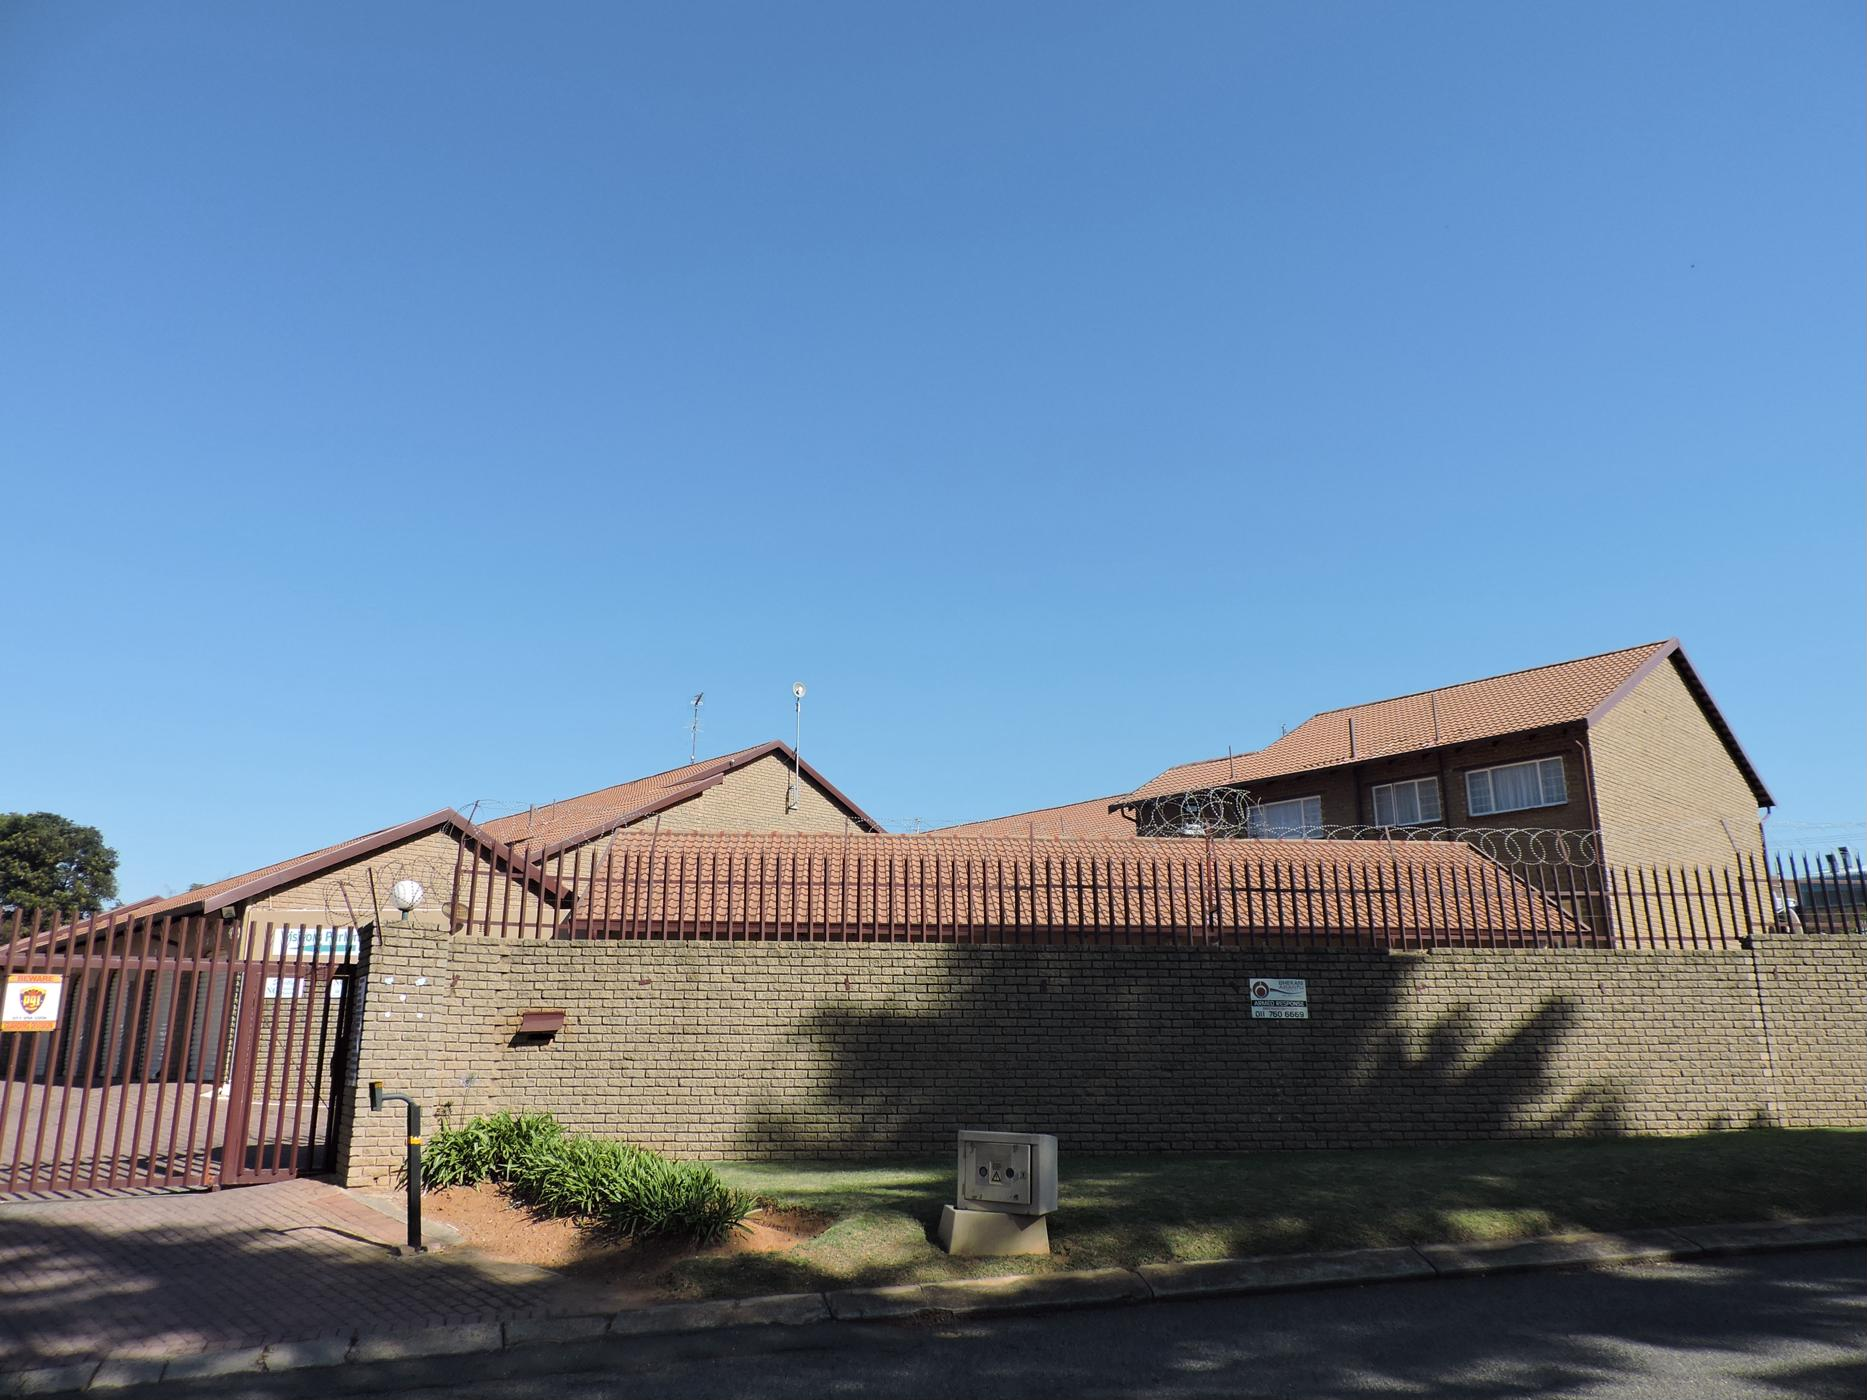 https://listing.pamgolding.co.za/images/properties/201811/1126912/H/1126912_H_12.jpg